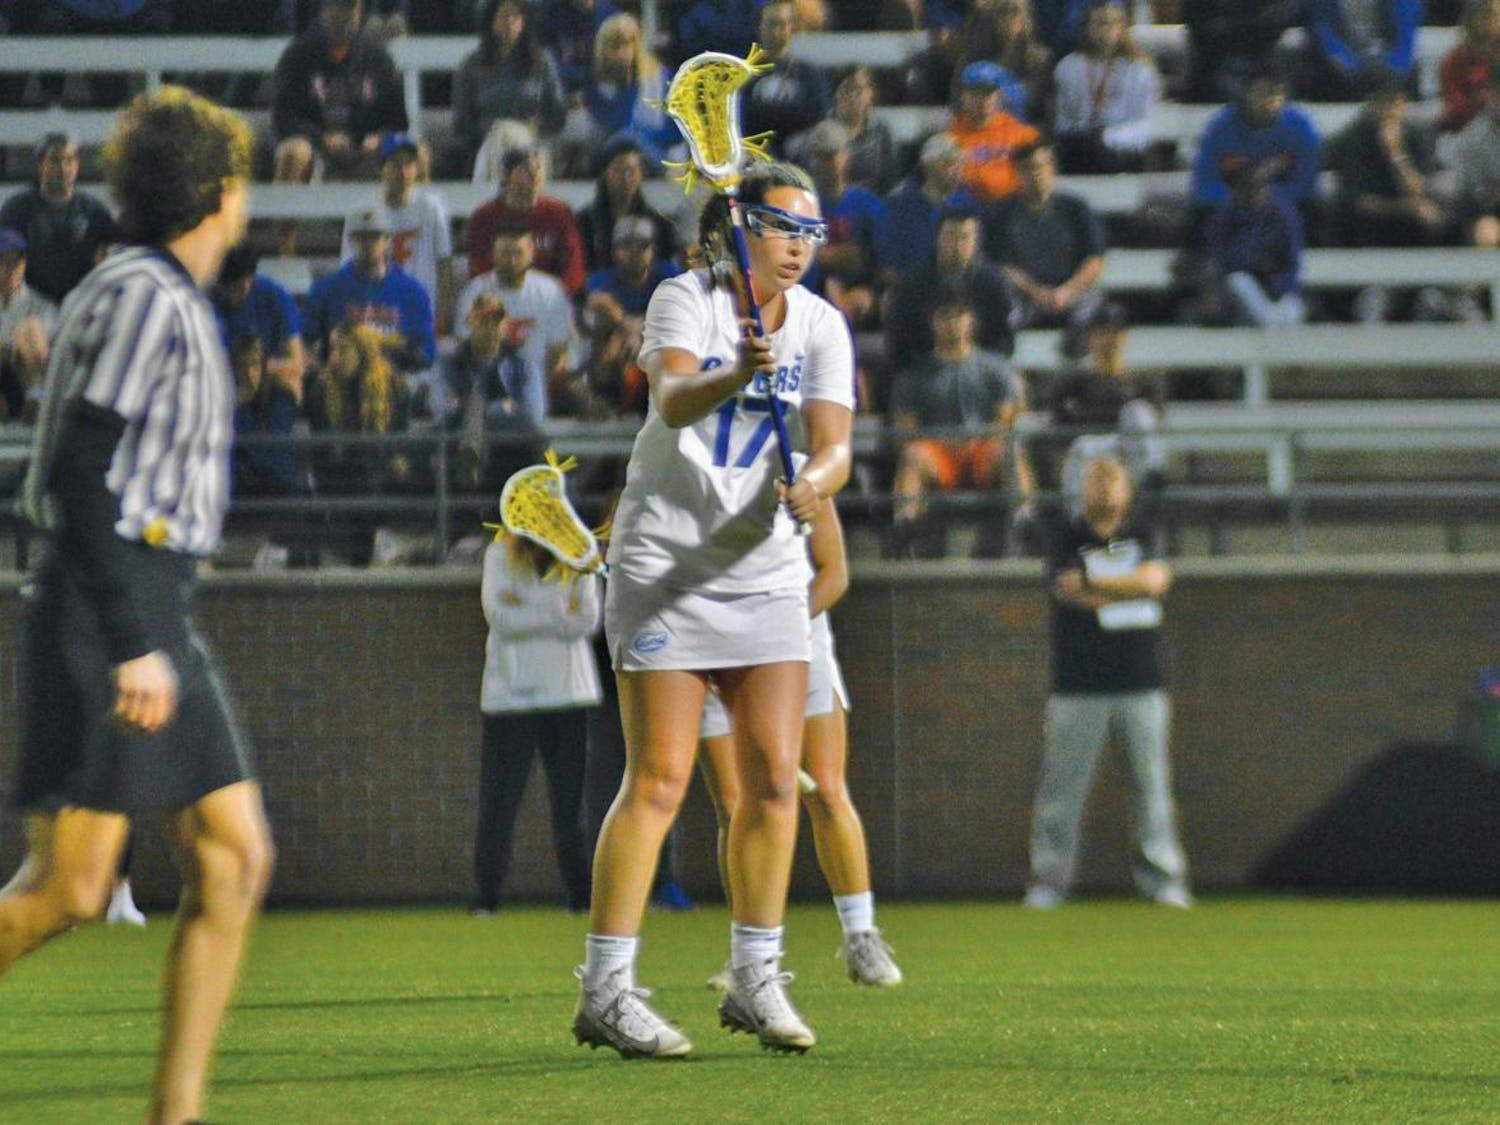 Midfielder Shannon Kavanagh was named an All-American selection by Inside Lacrosse.